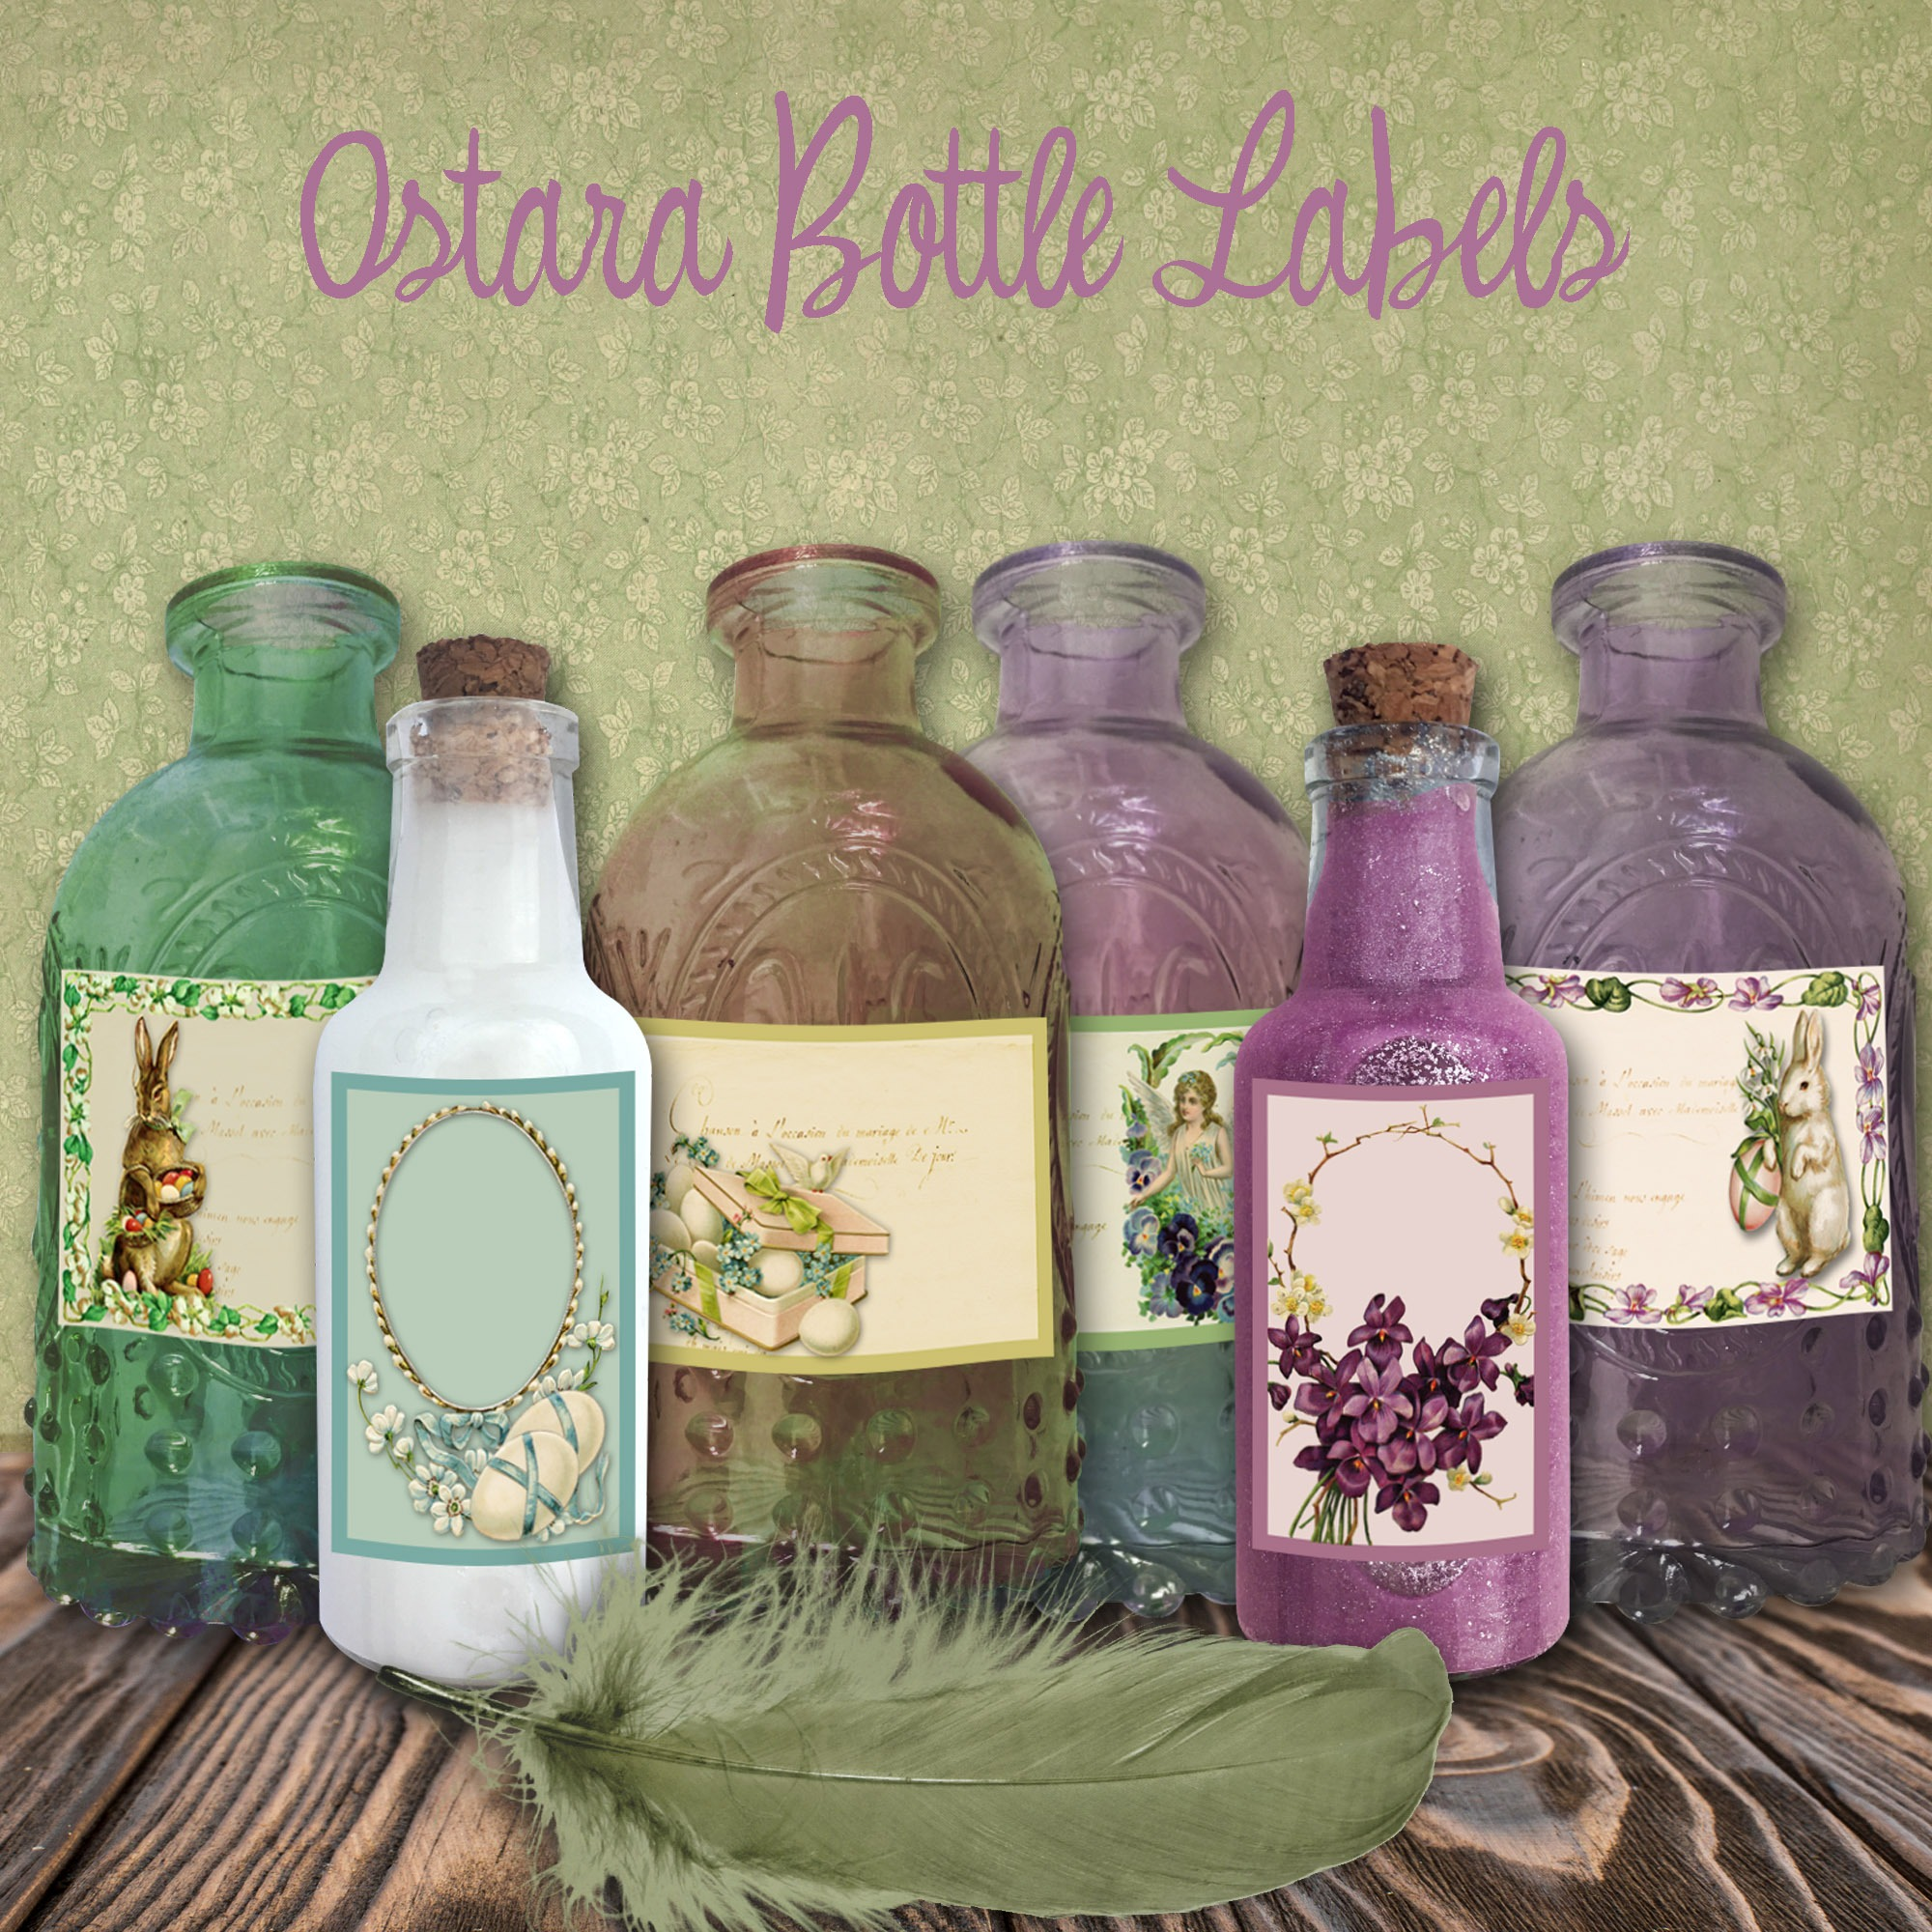 OSTARA APOTHECARY LABELS  - 6 Labels